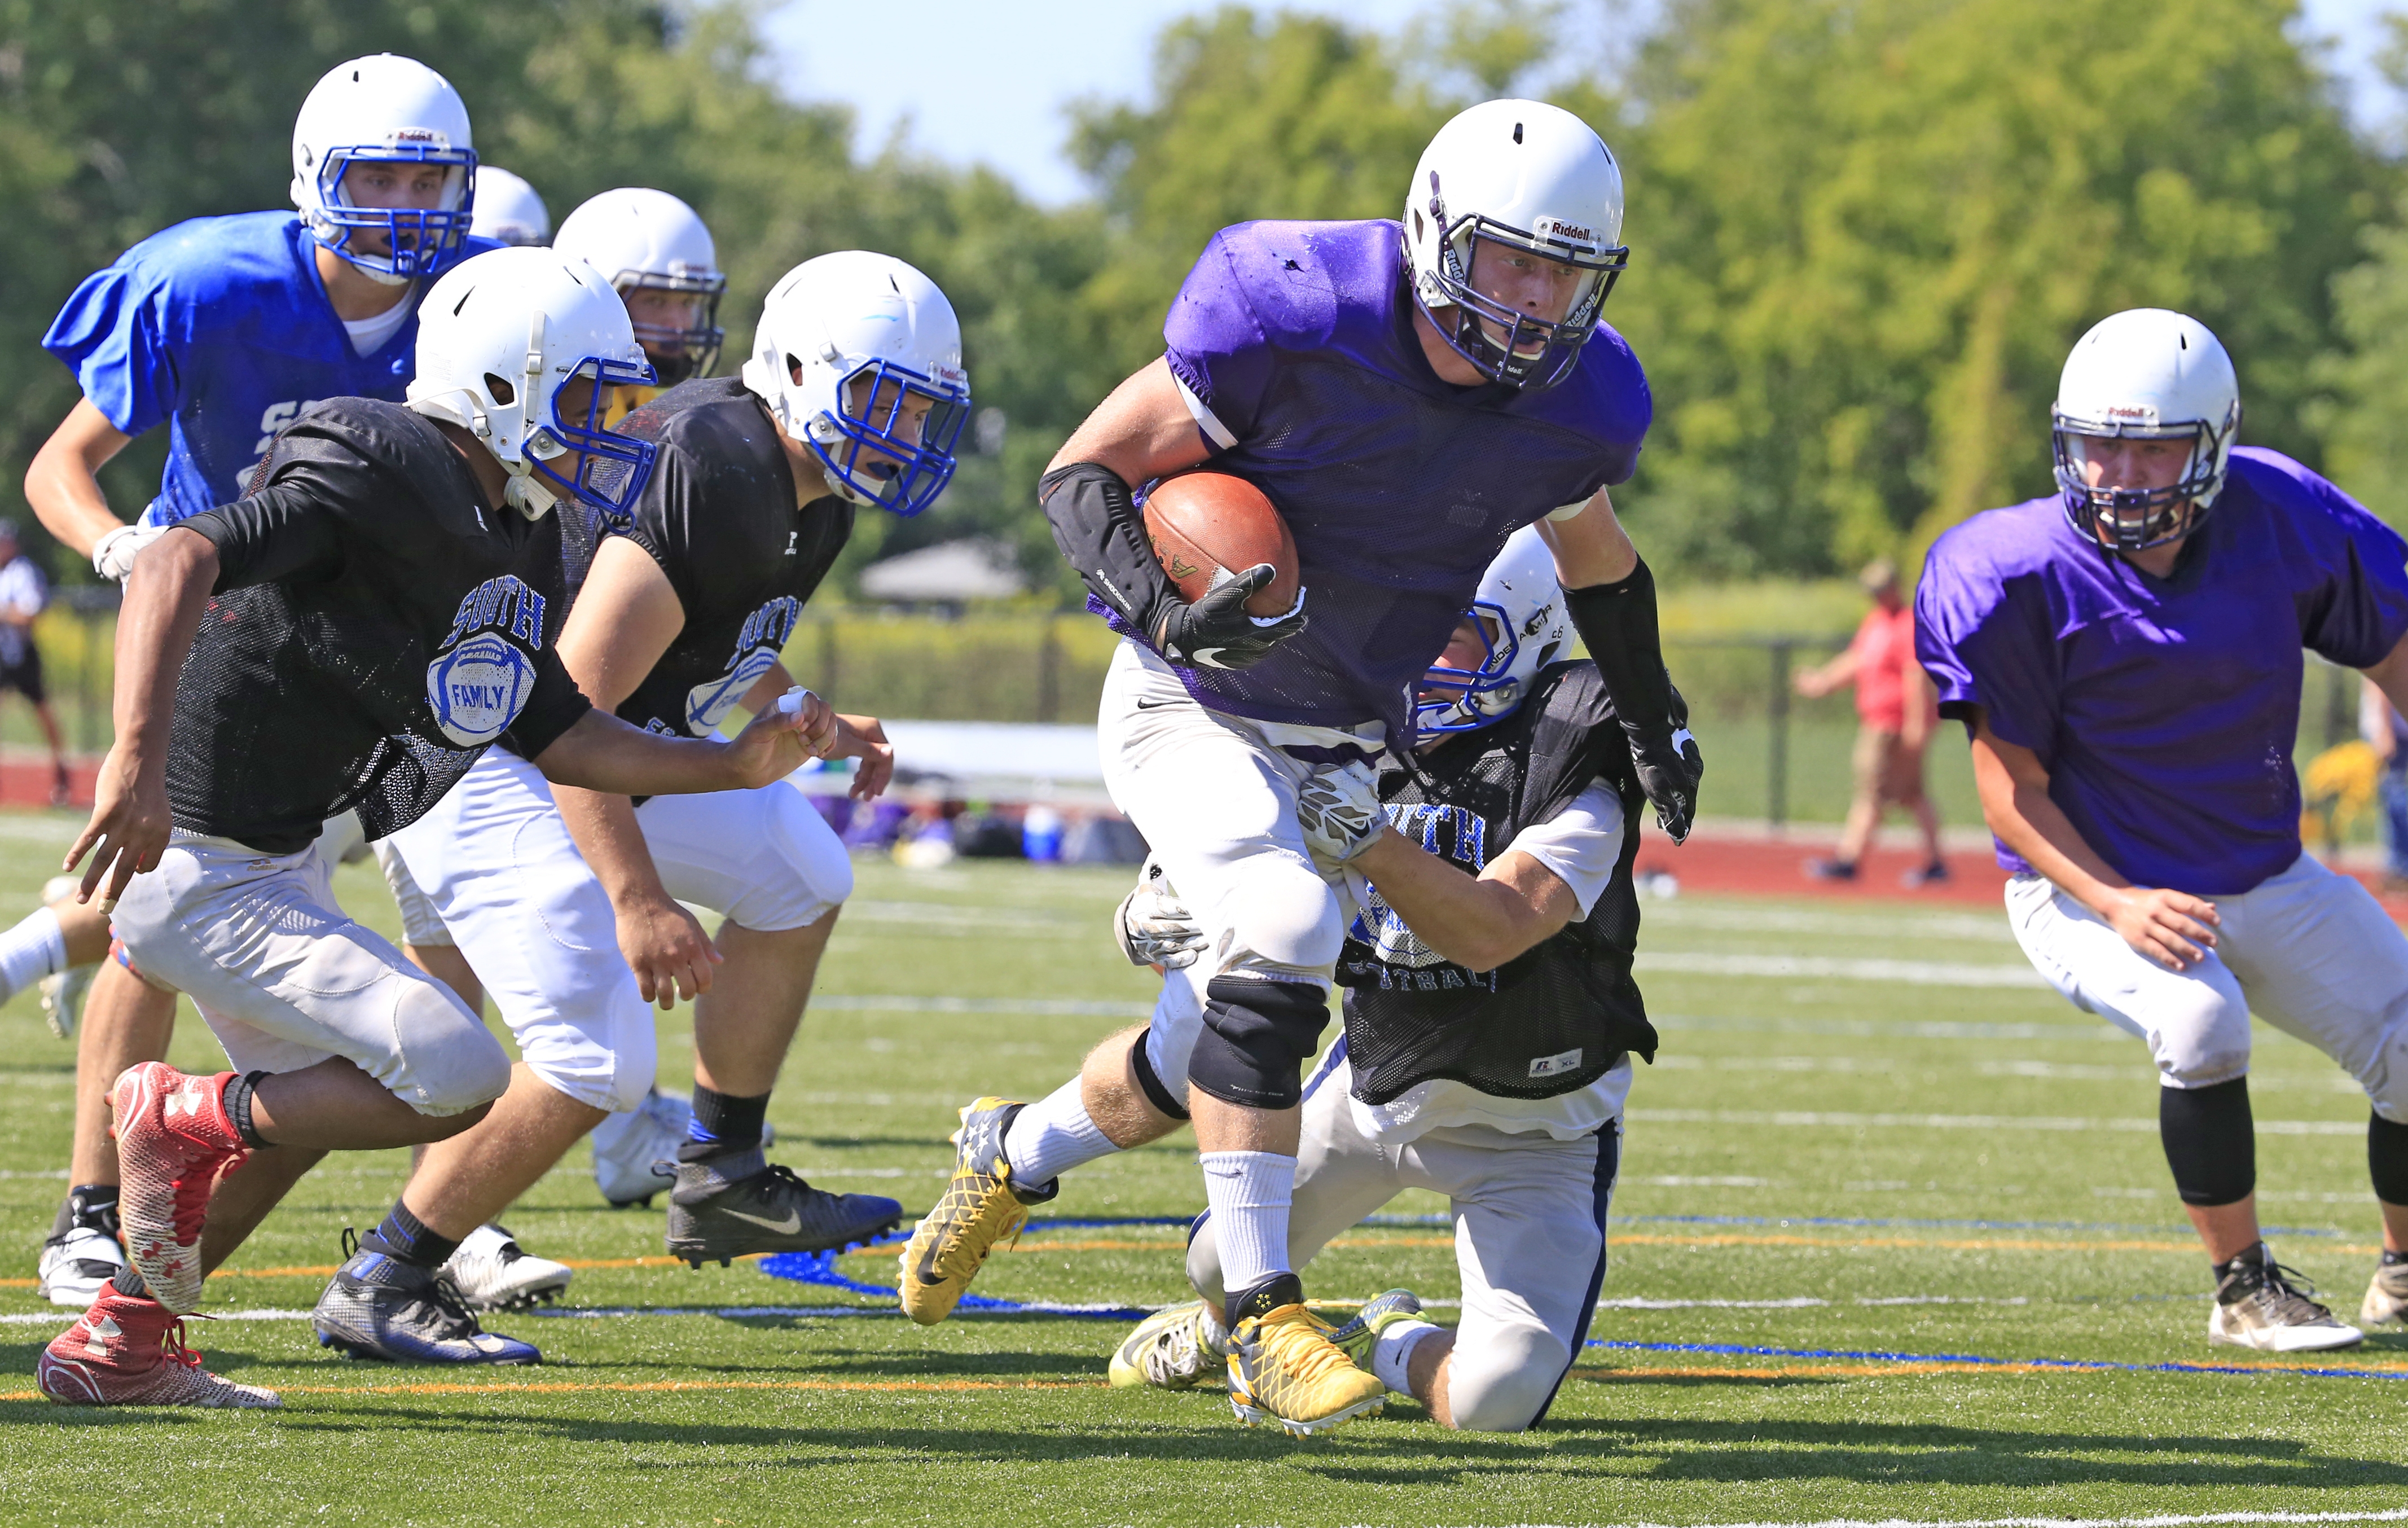 Springville's Ian Baker looks to build on a season in which he rushed for 1,166 yards. (Harry Scull Jr./Buffalo News)